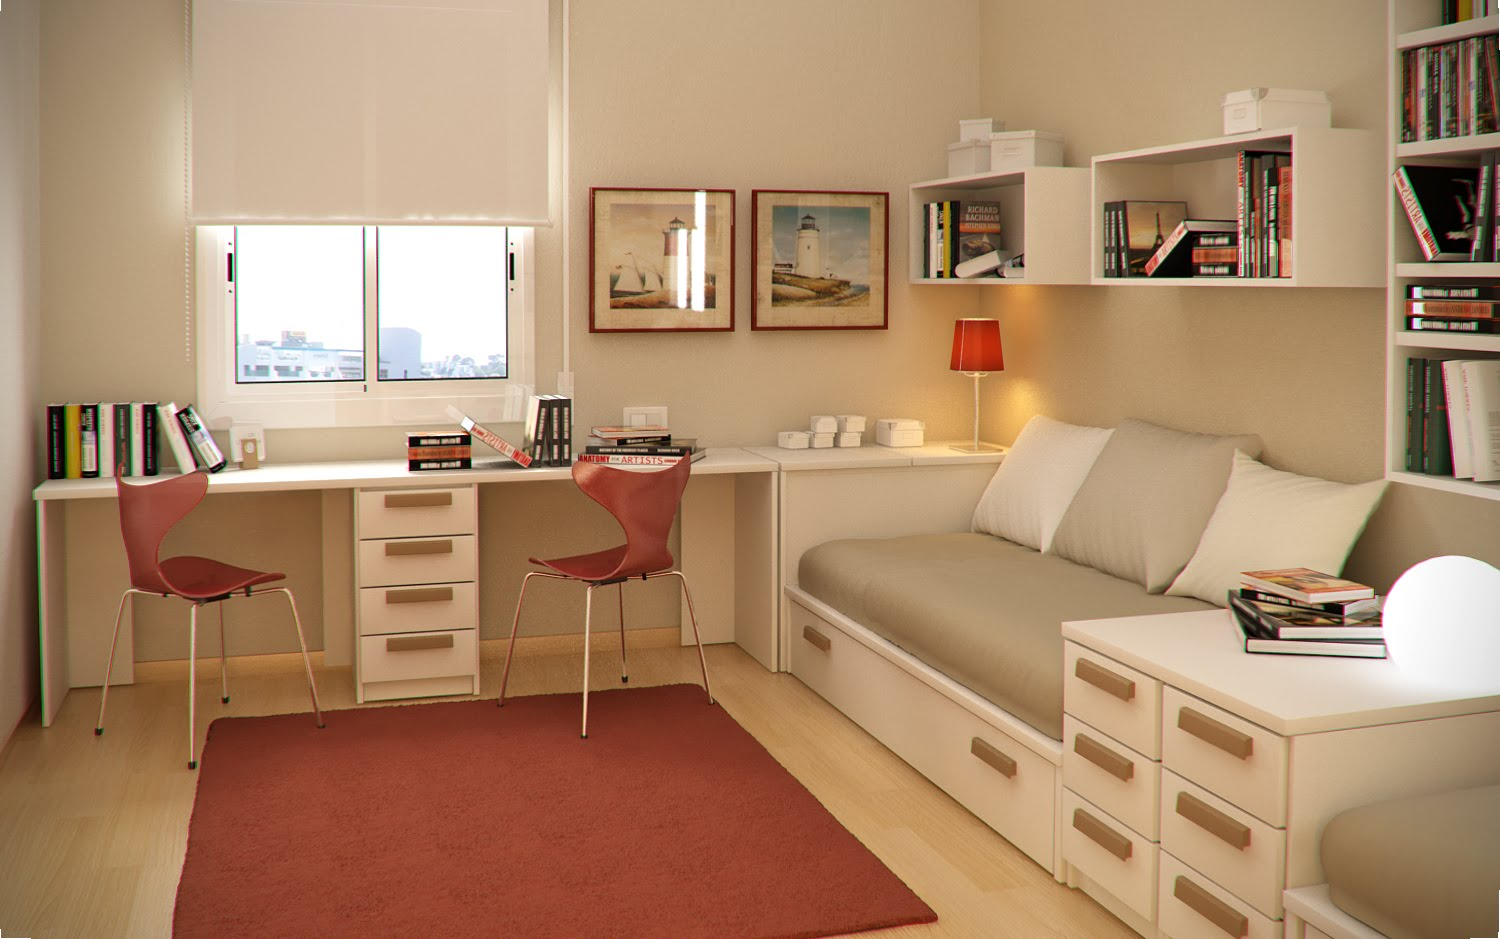 Small floorspace kids rooms Study room ideas